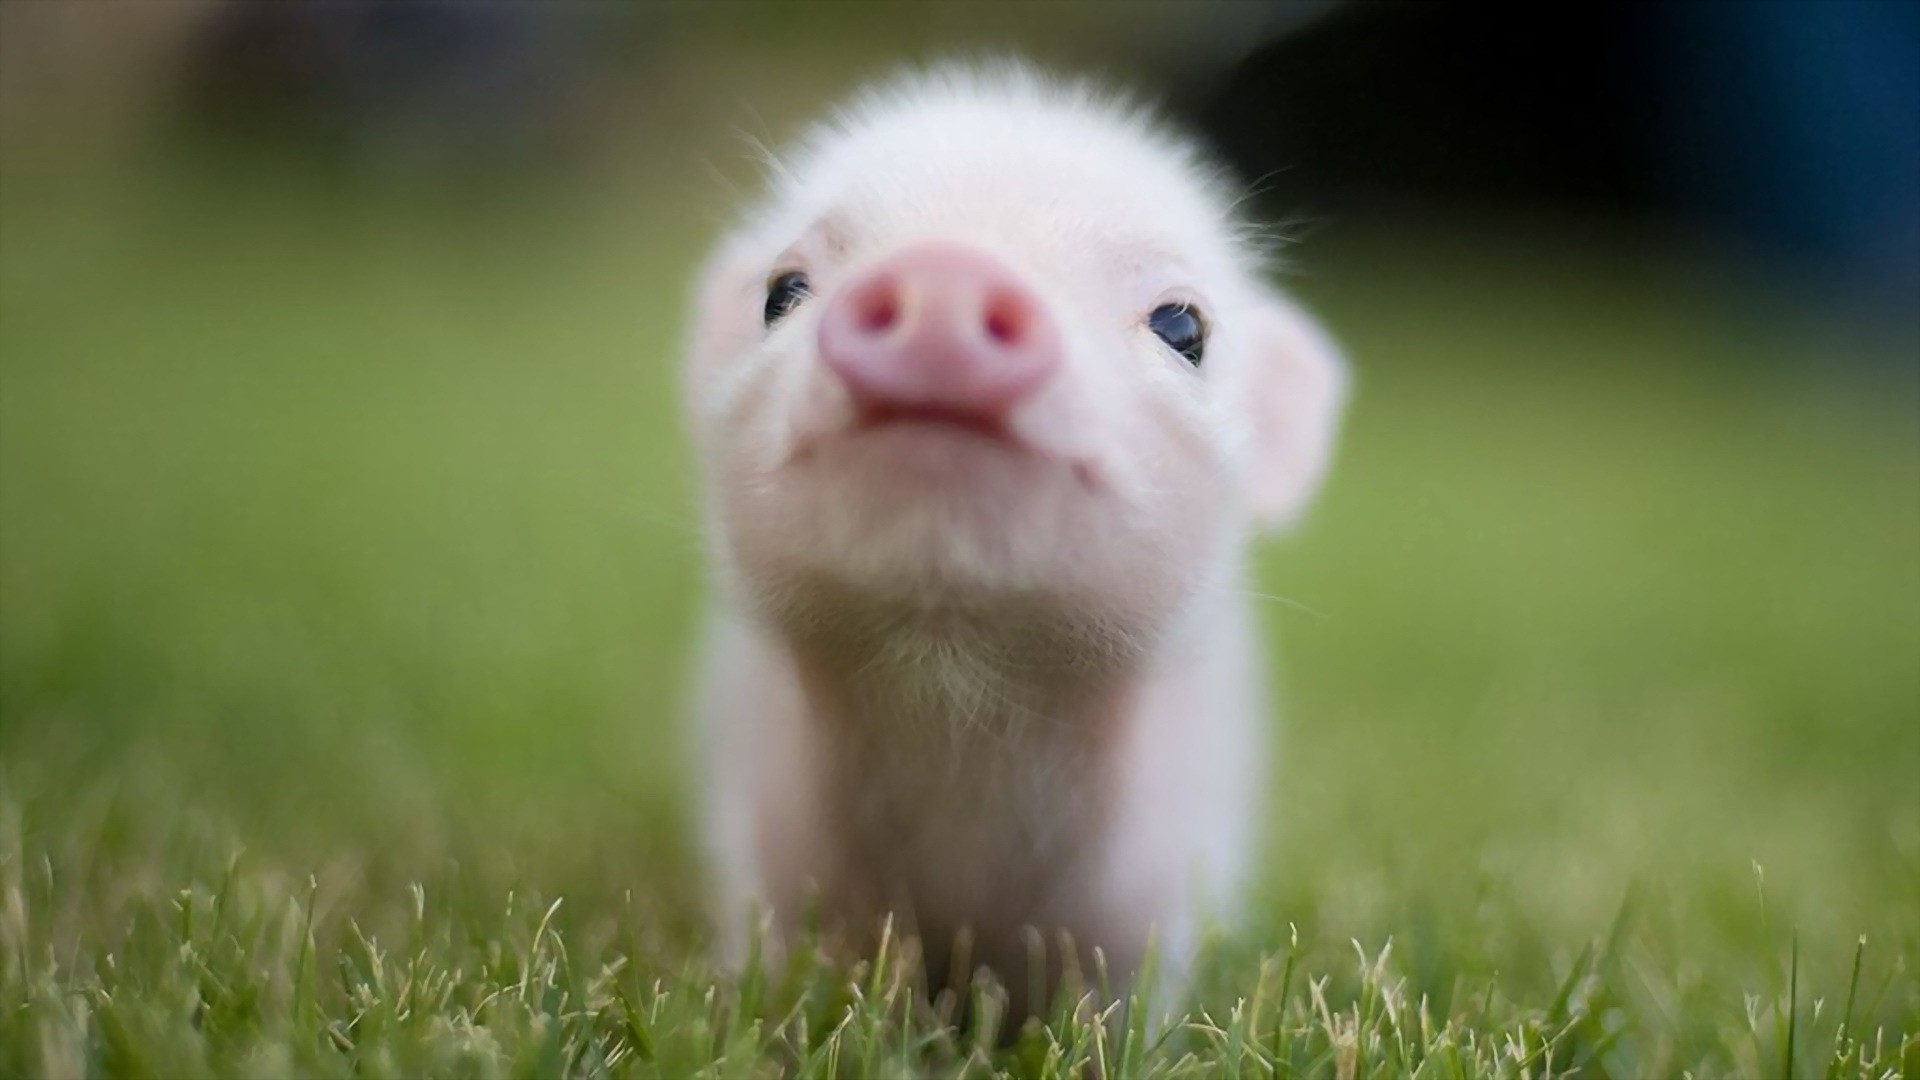 Teacup Pigs in Connecticut